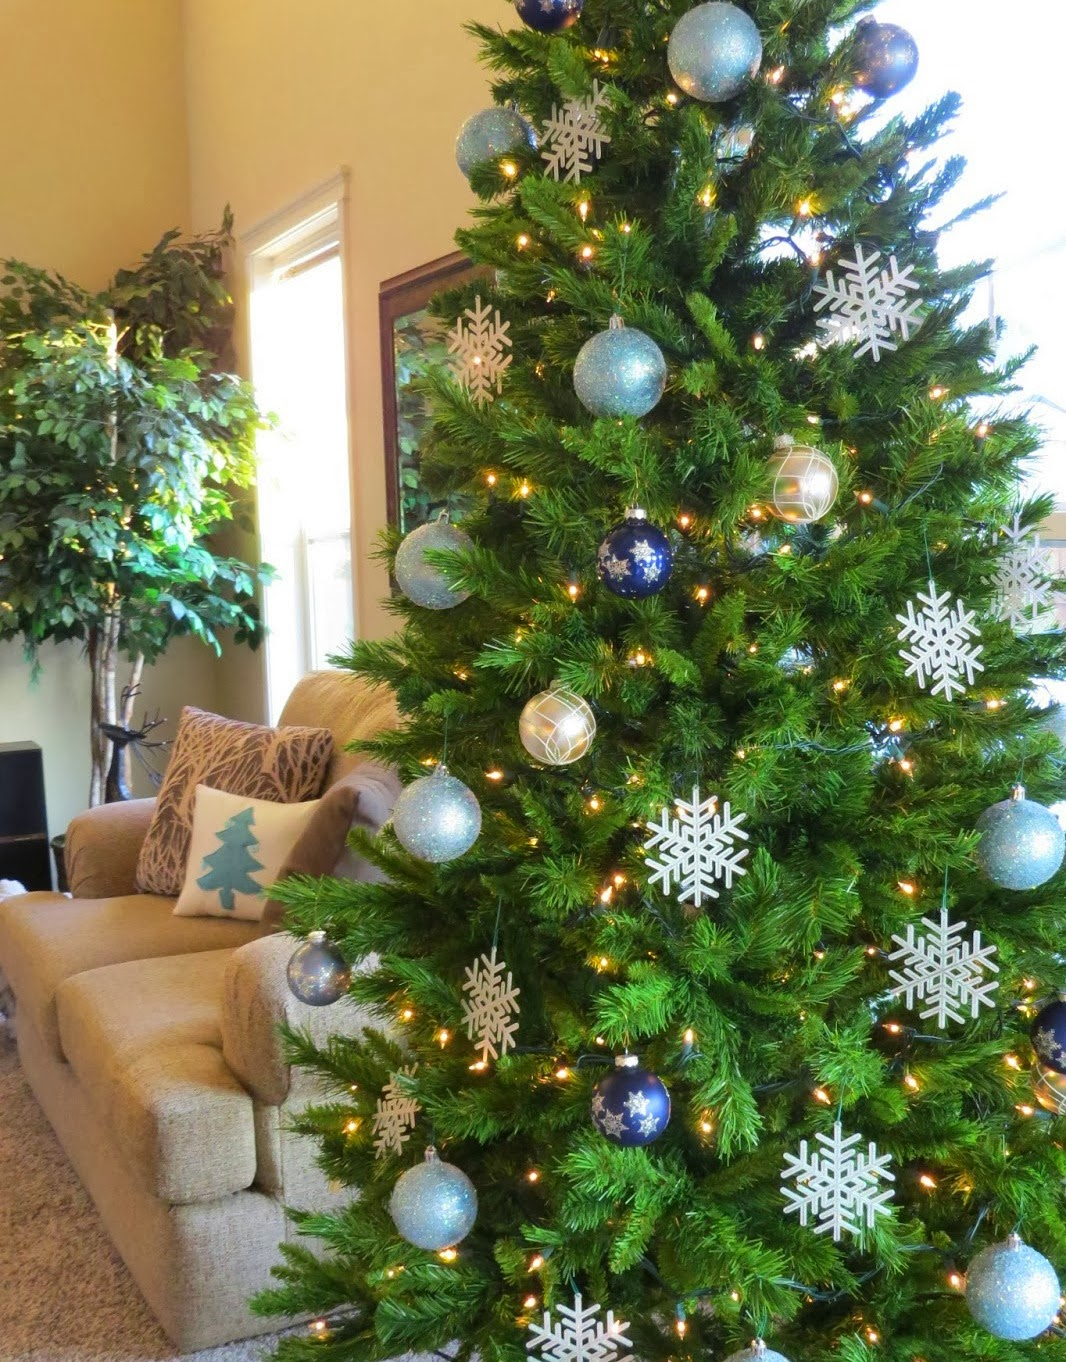 Rustic Christmas Decor, Christmas Tree with Blue and Silver Ornaments